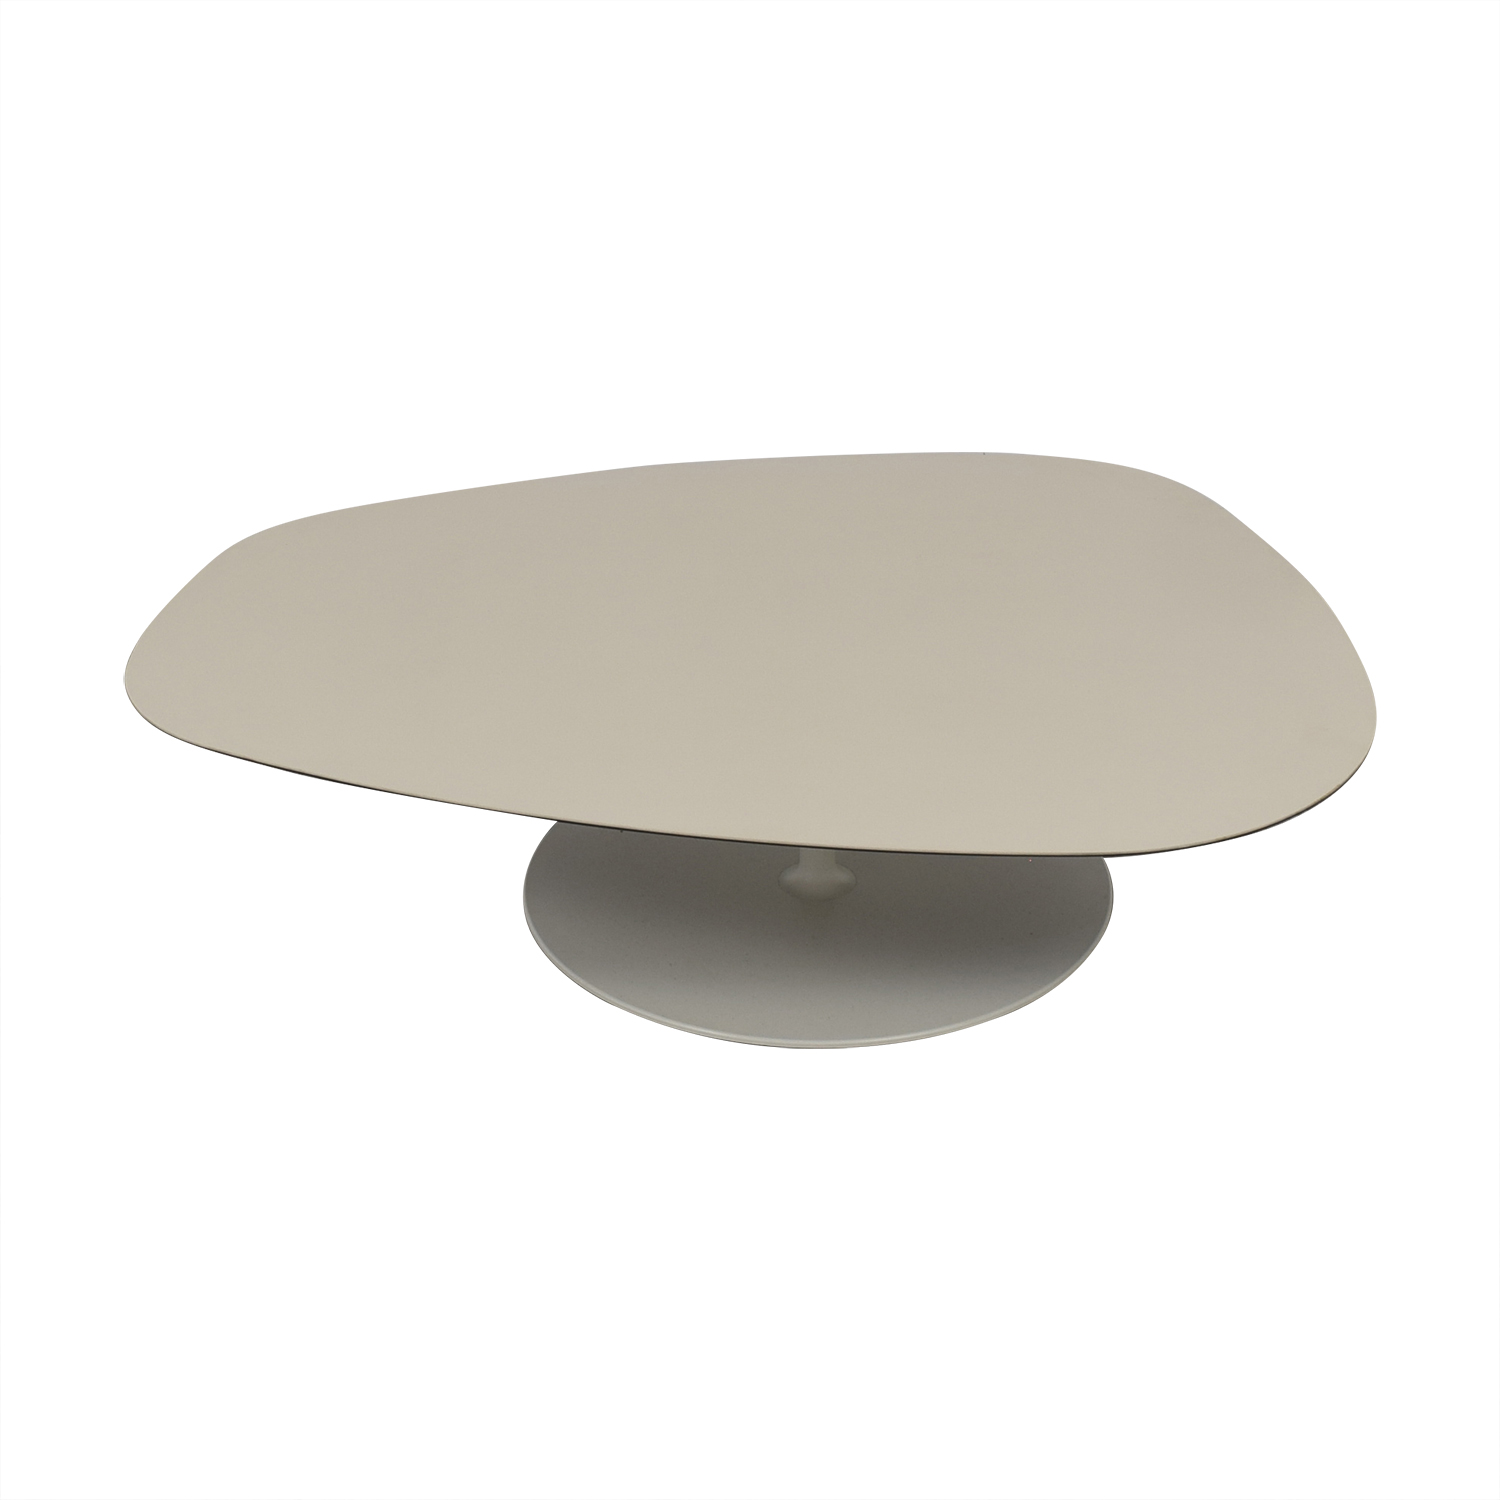 buy Moroso Phoenix White Rounded Triangular Table Moroso Sofas